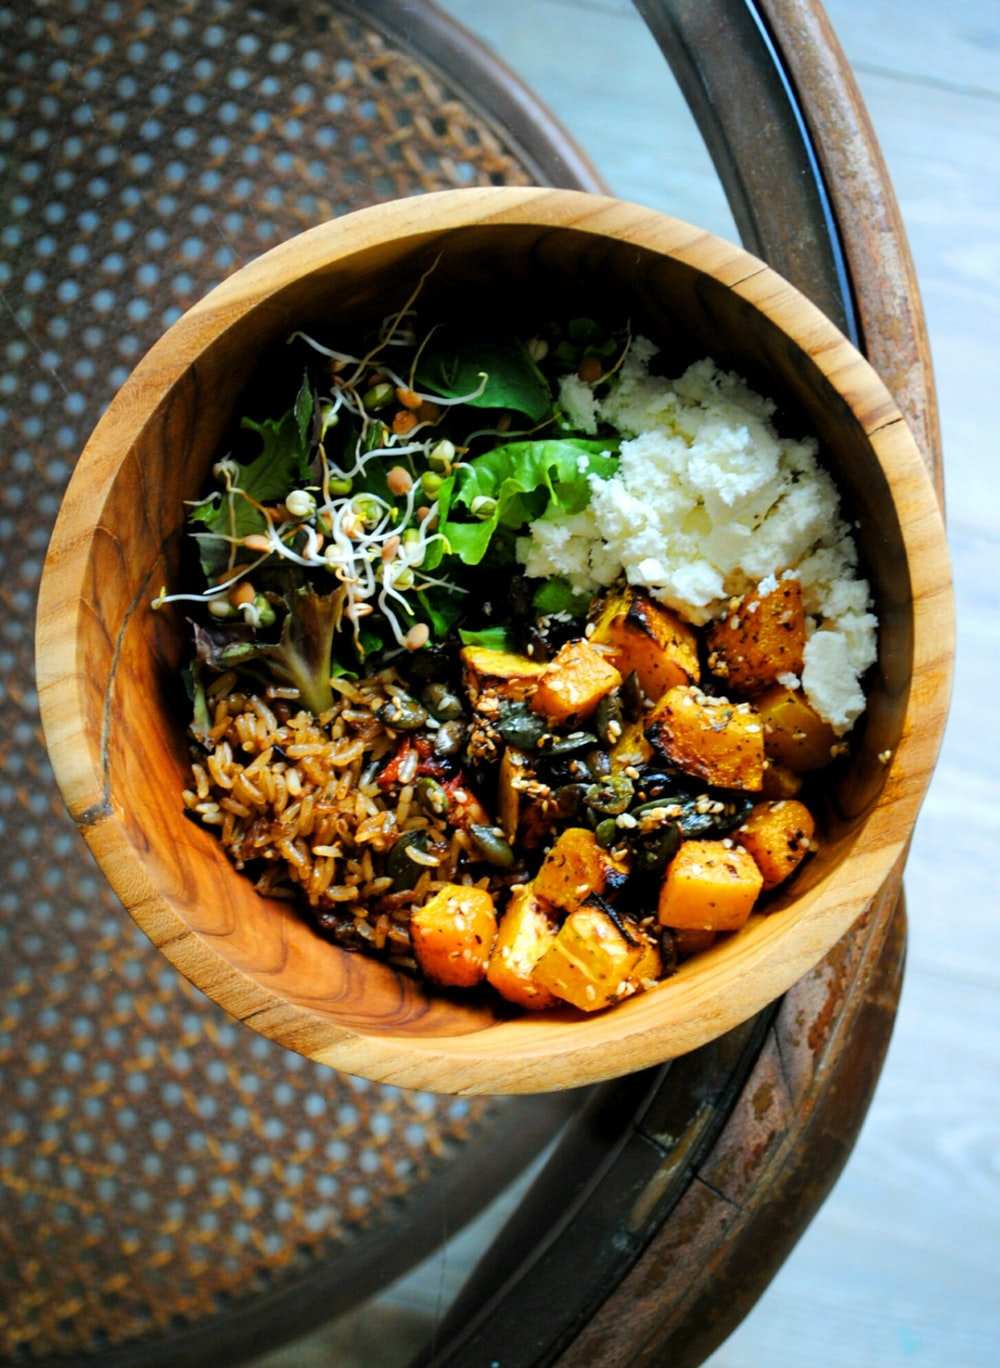 cooked food in brown wooden bowl